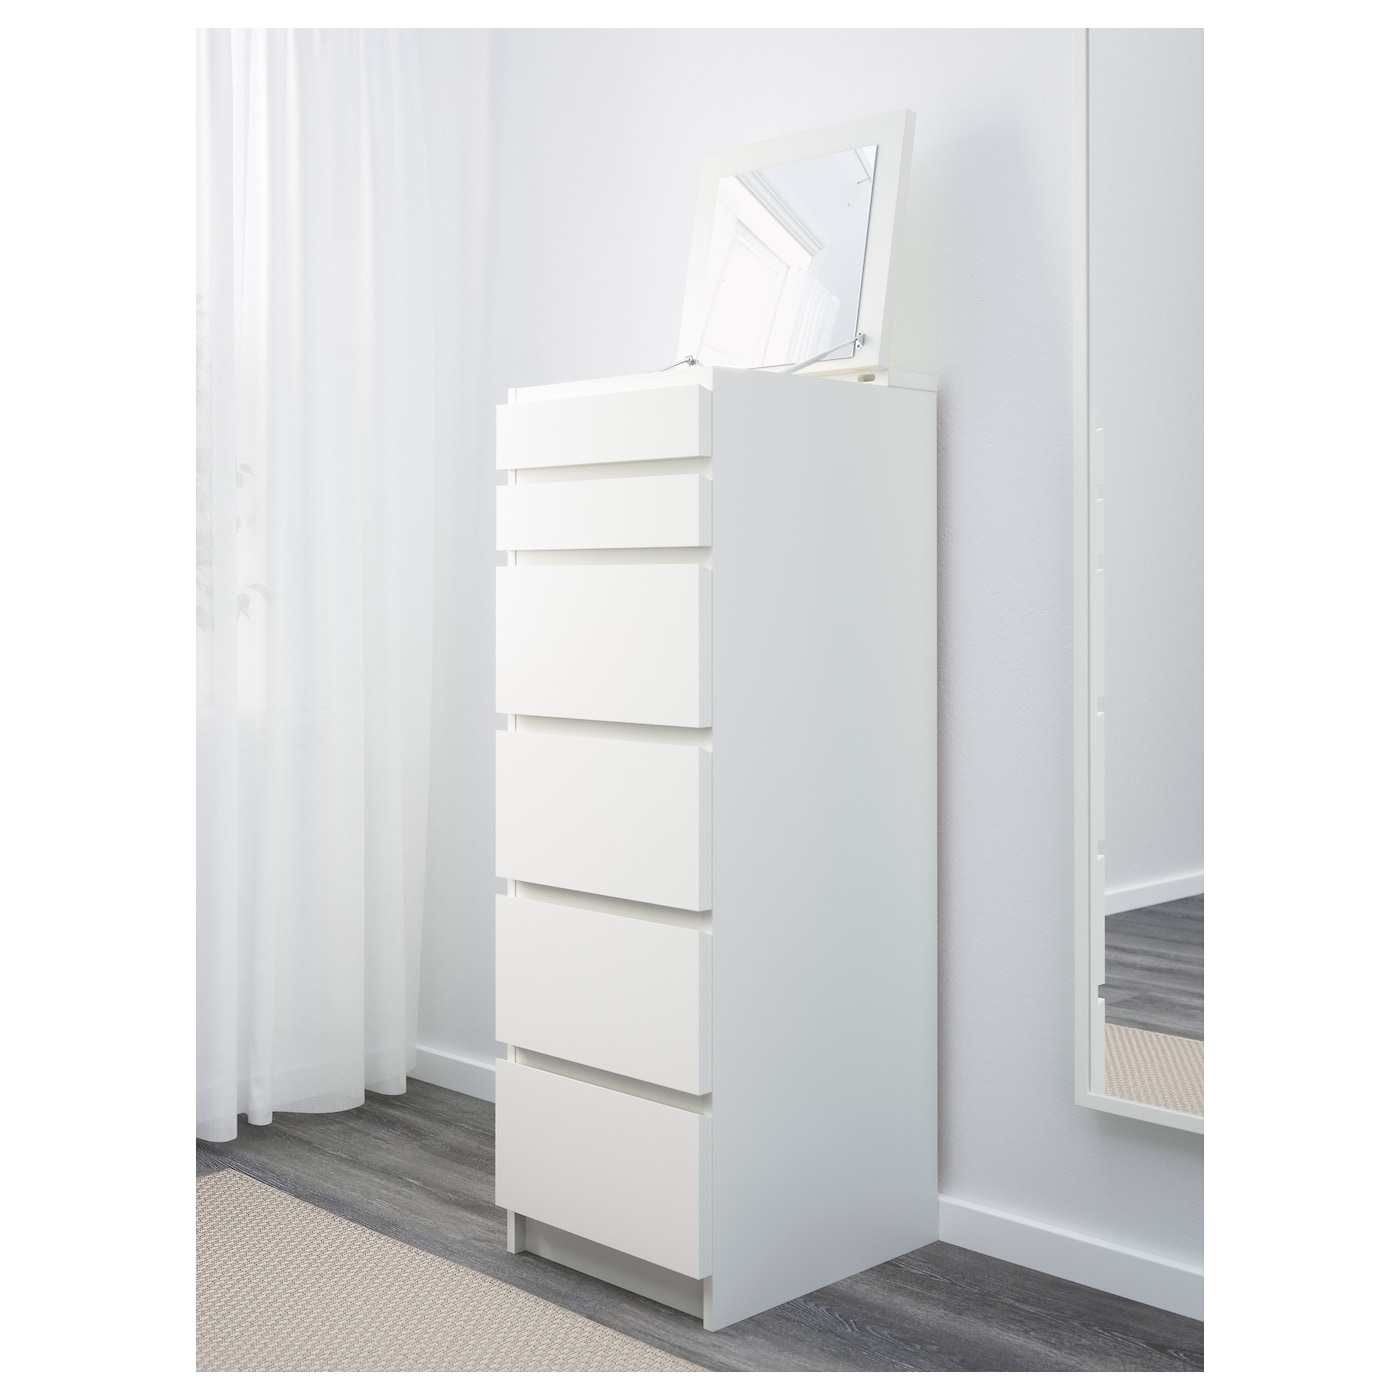 MALM Chest of 6 drawers White/mirror glass 40 x 123 cm